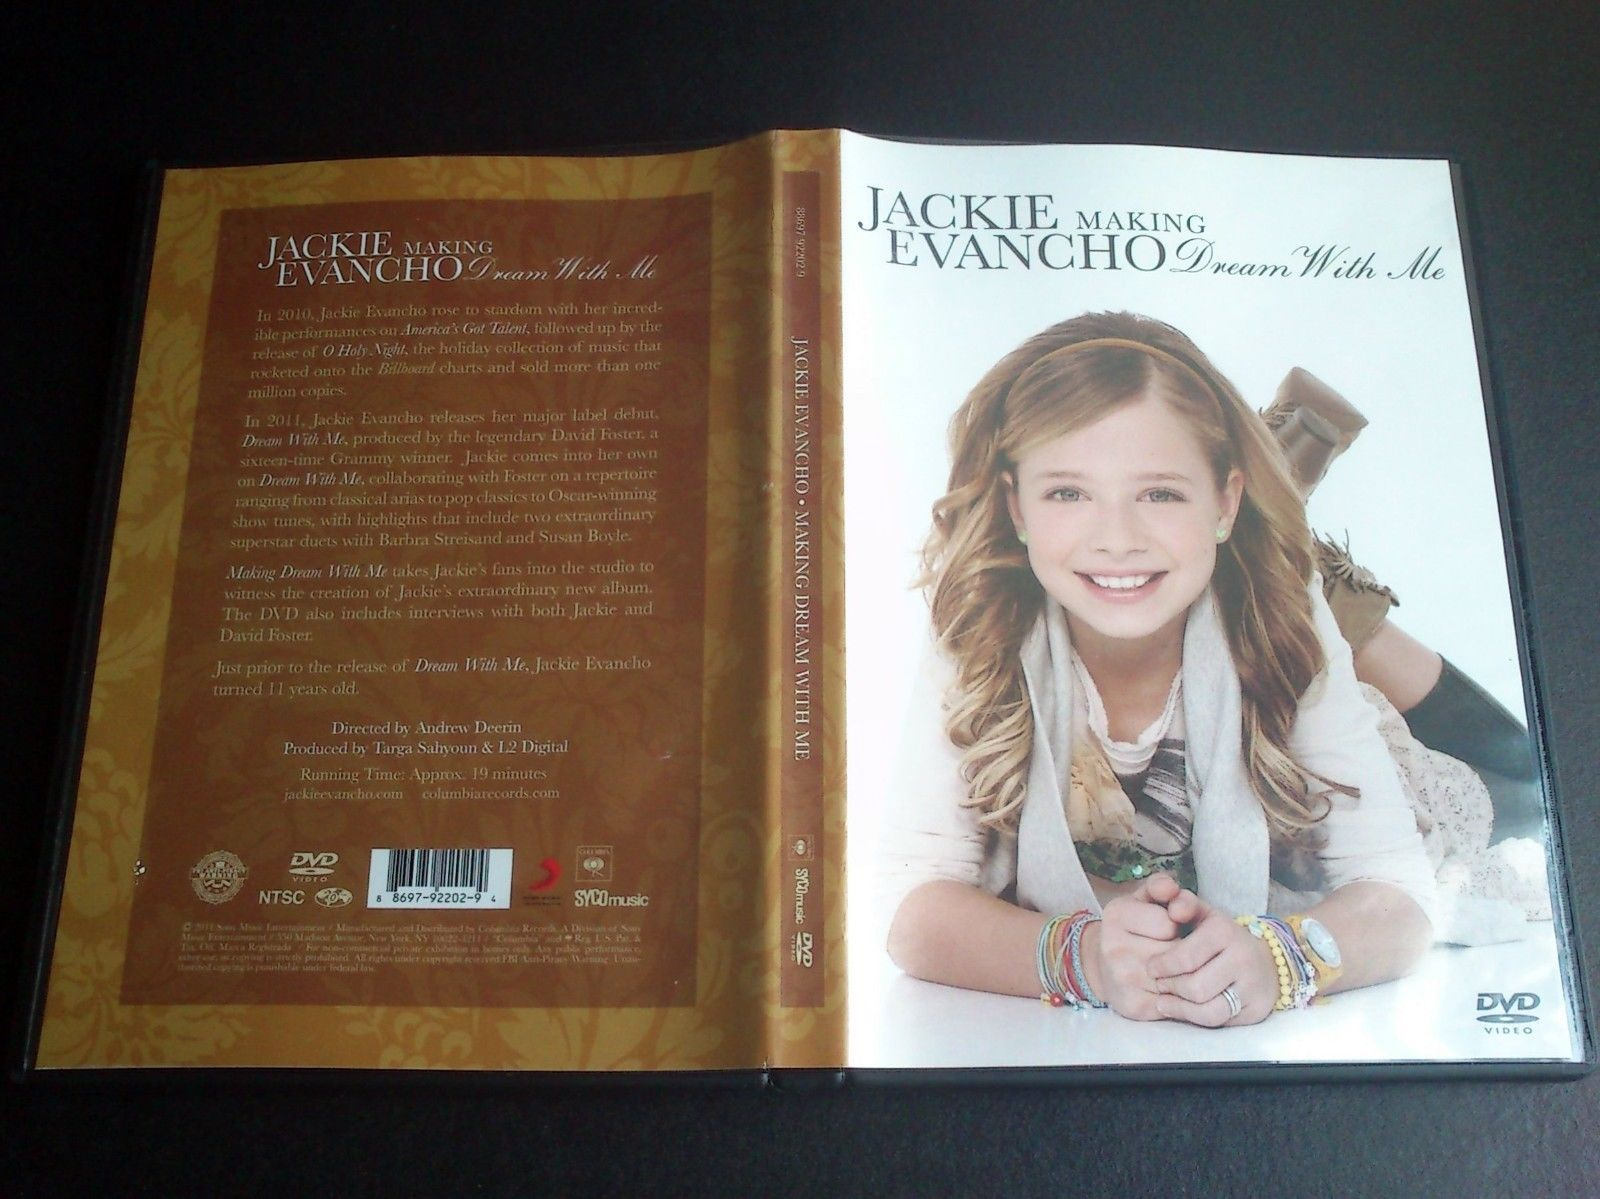 Jackie Evancho Making Dream With Me 2011 Us Dvd Limited W David Foster Jackie Evancho Jackie The Fosters